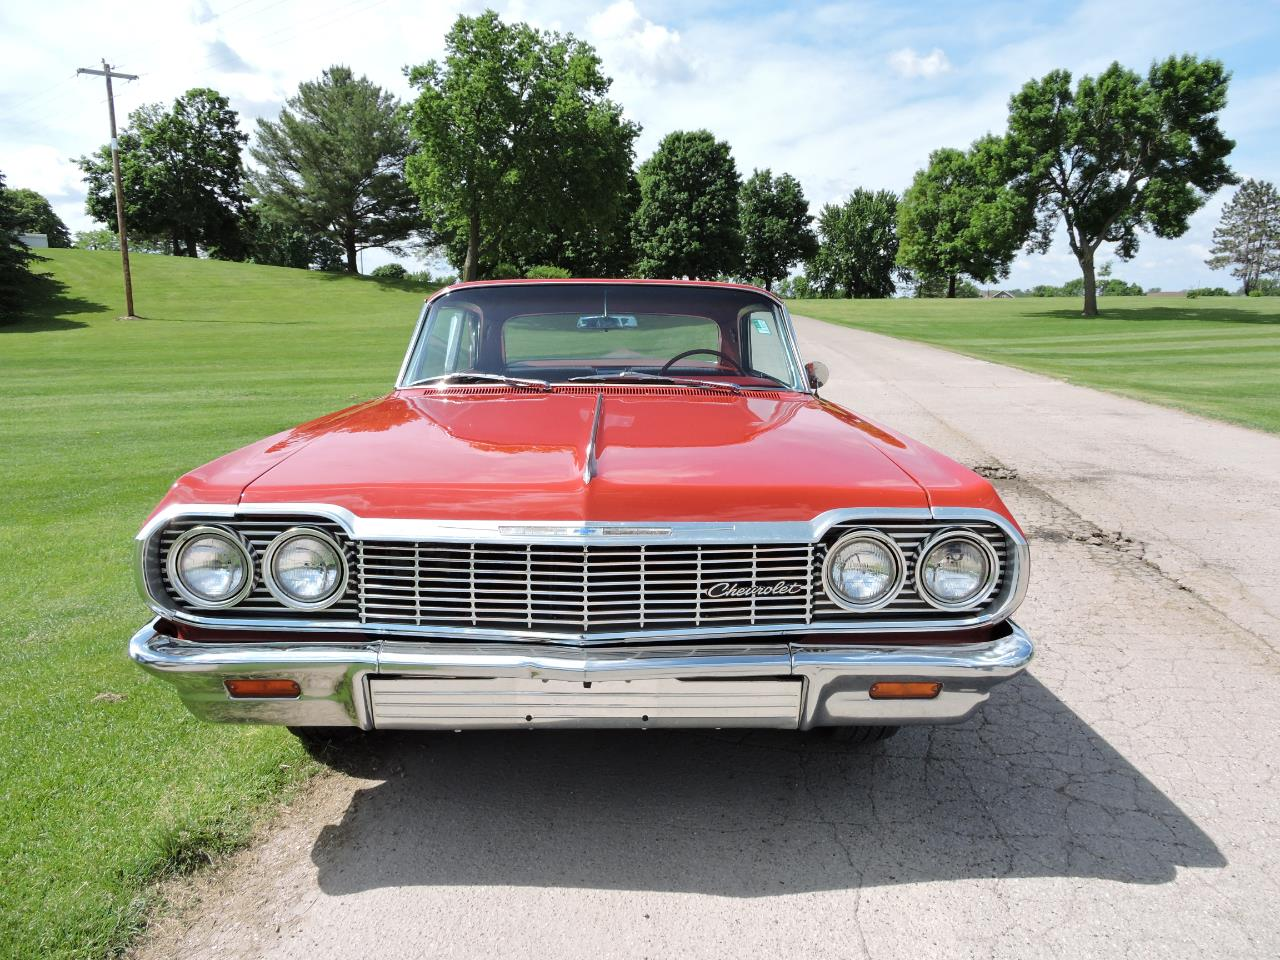 1964 Chevrolet Impala SS (CC-1229923) for sale in Greene, Iowa